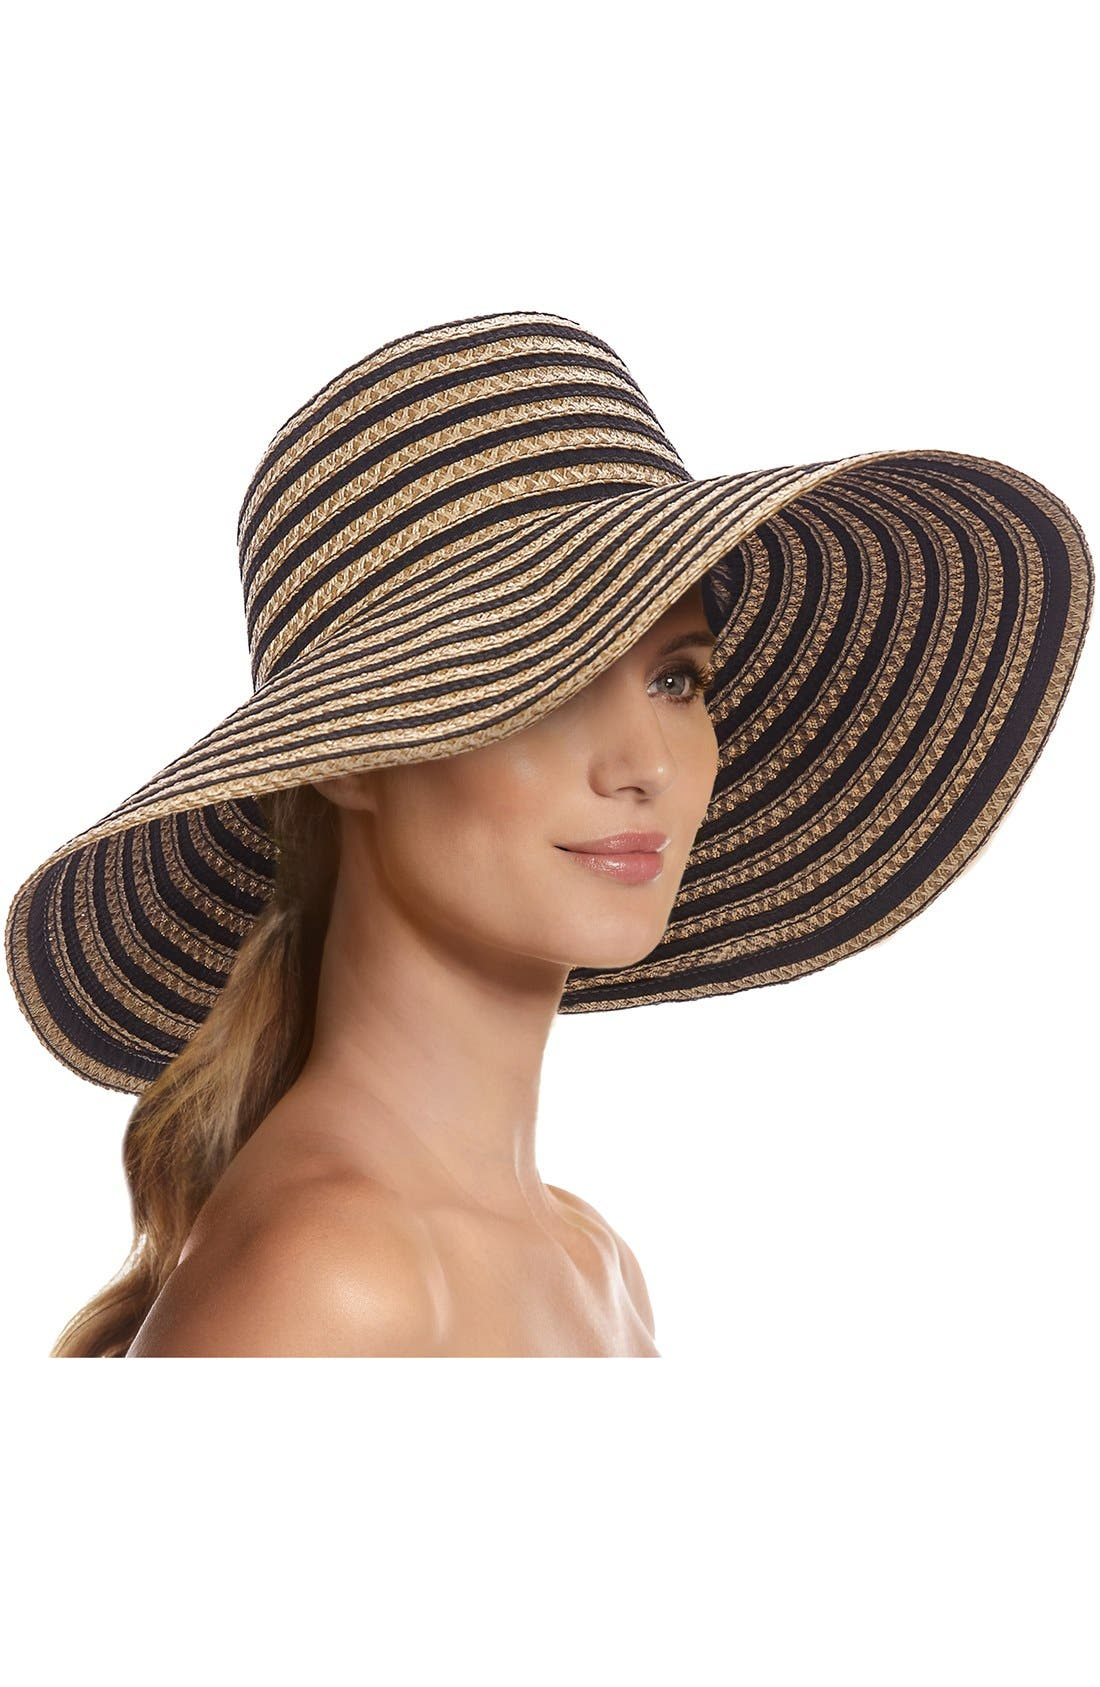 Alternate Image 2  - Eric Javits 'GG Dame II' Packable Sun Hat